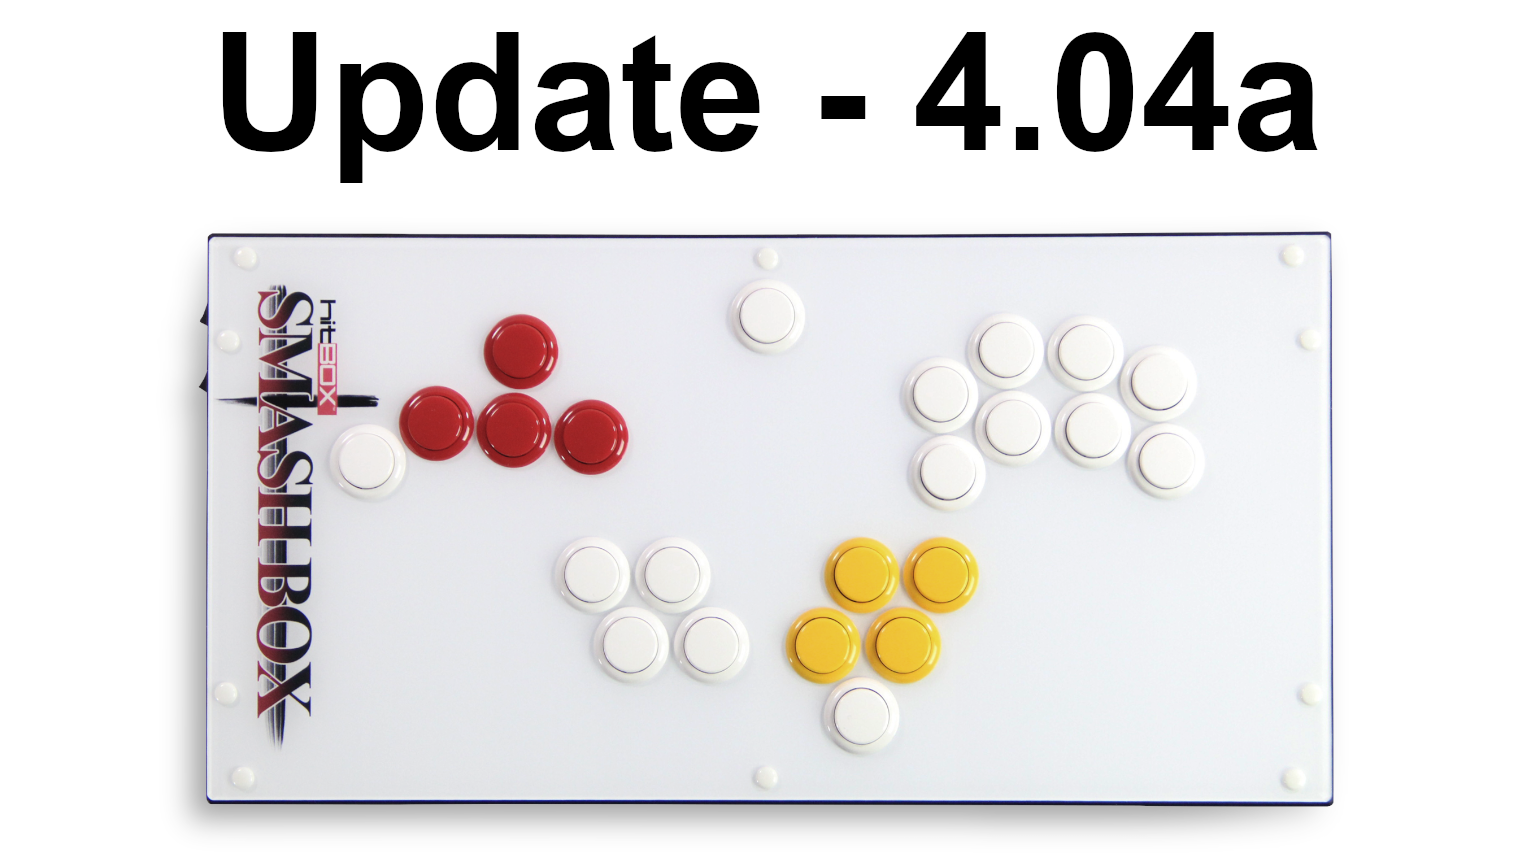 Smash Box Update - 4.04a